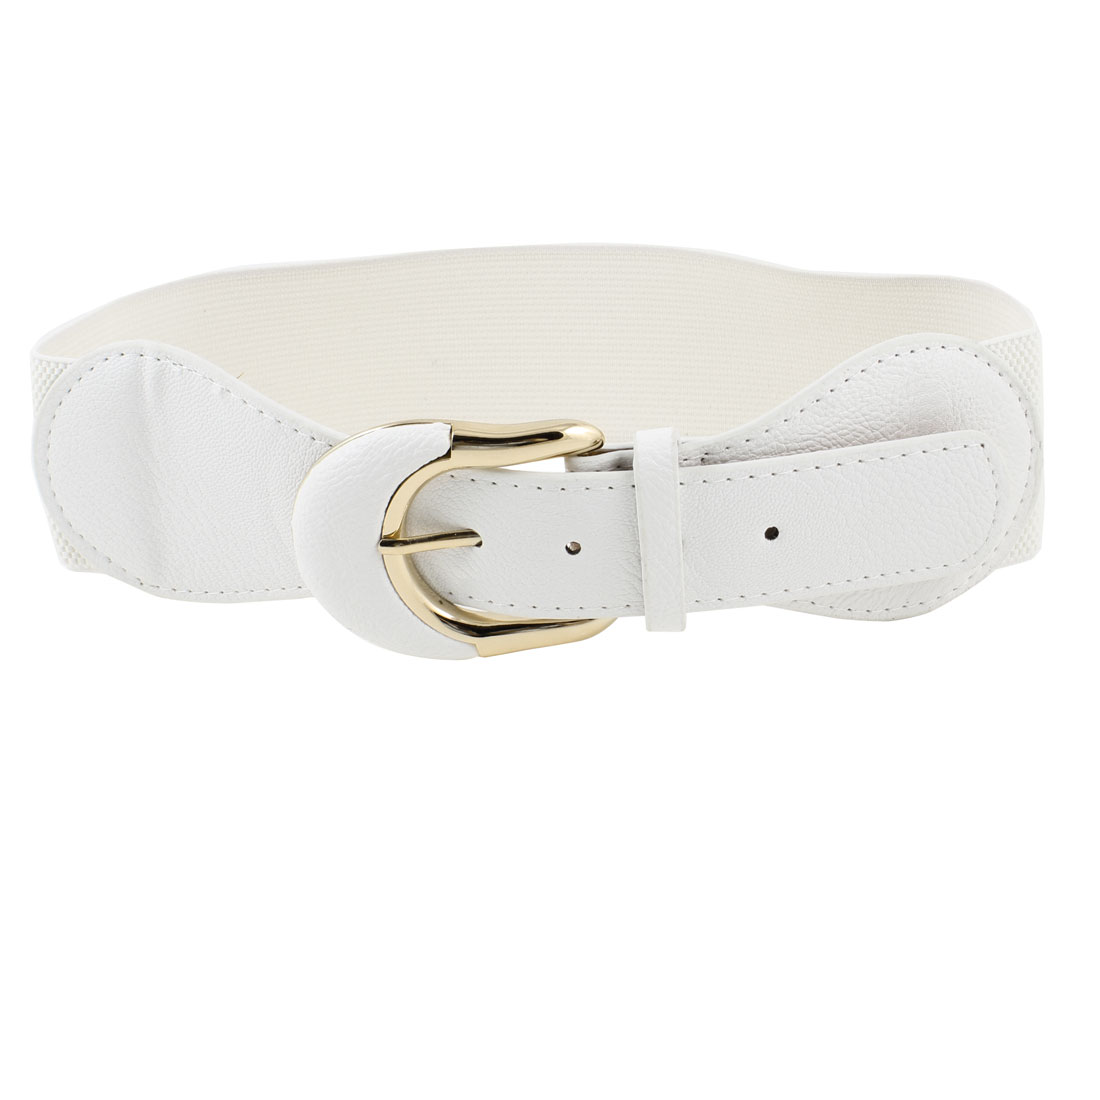 Lady Woman Metal Single Pin Buckle Textured Elastic Cinch Belt White